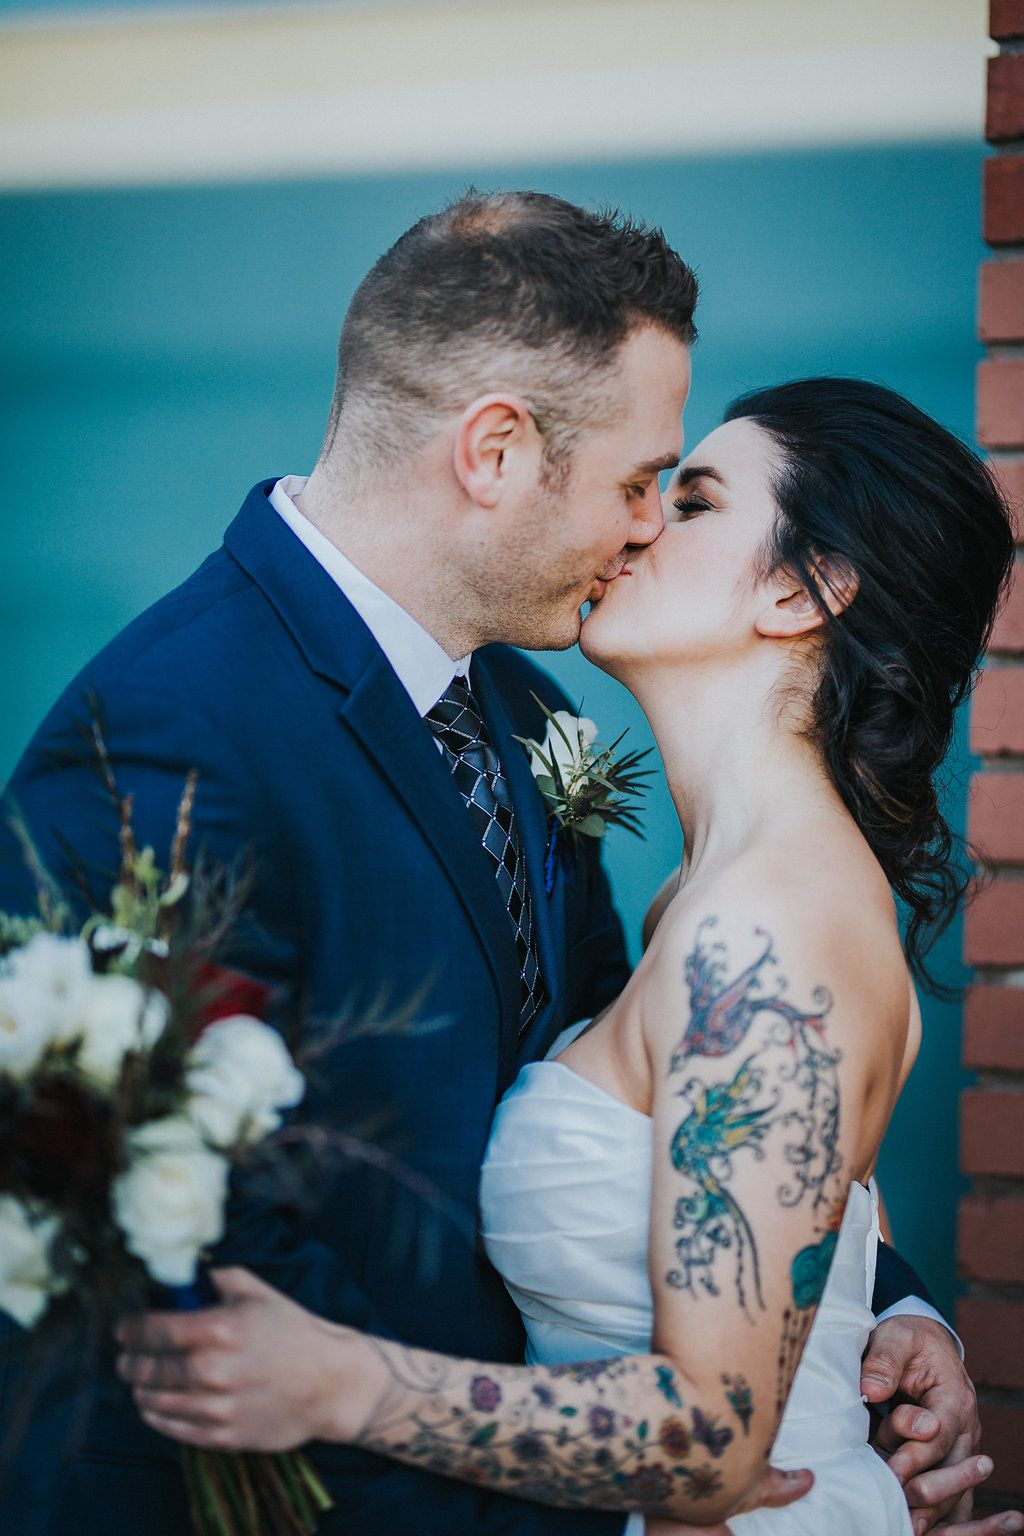 The Stars Aligned Tattooed Bride Brides For A Cause Make Me